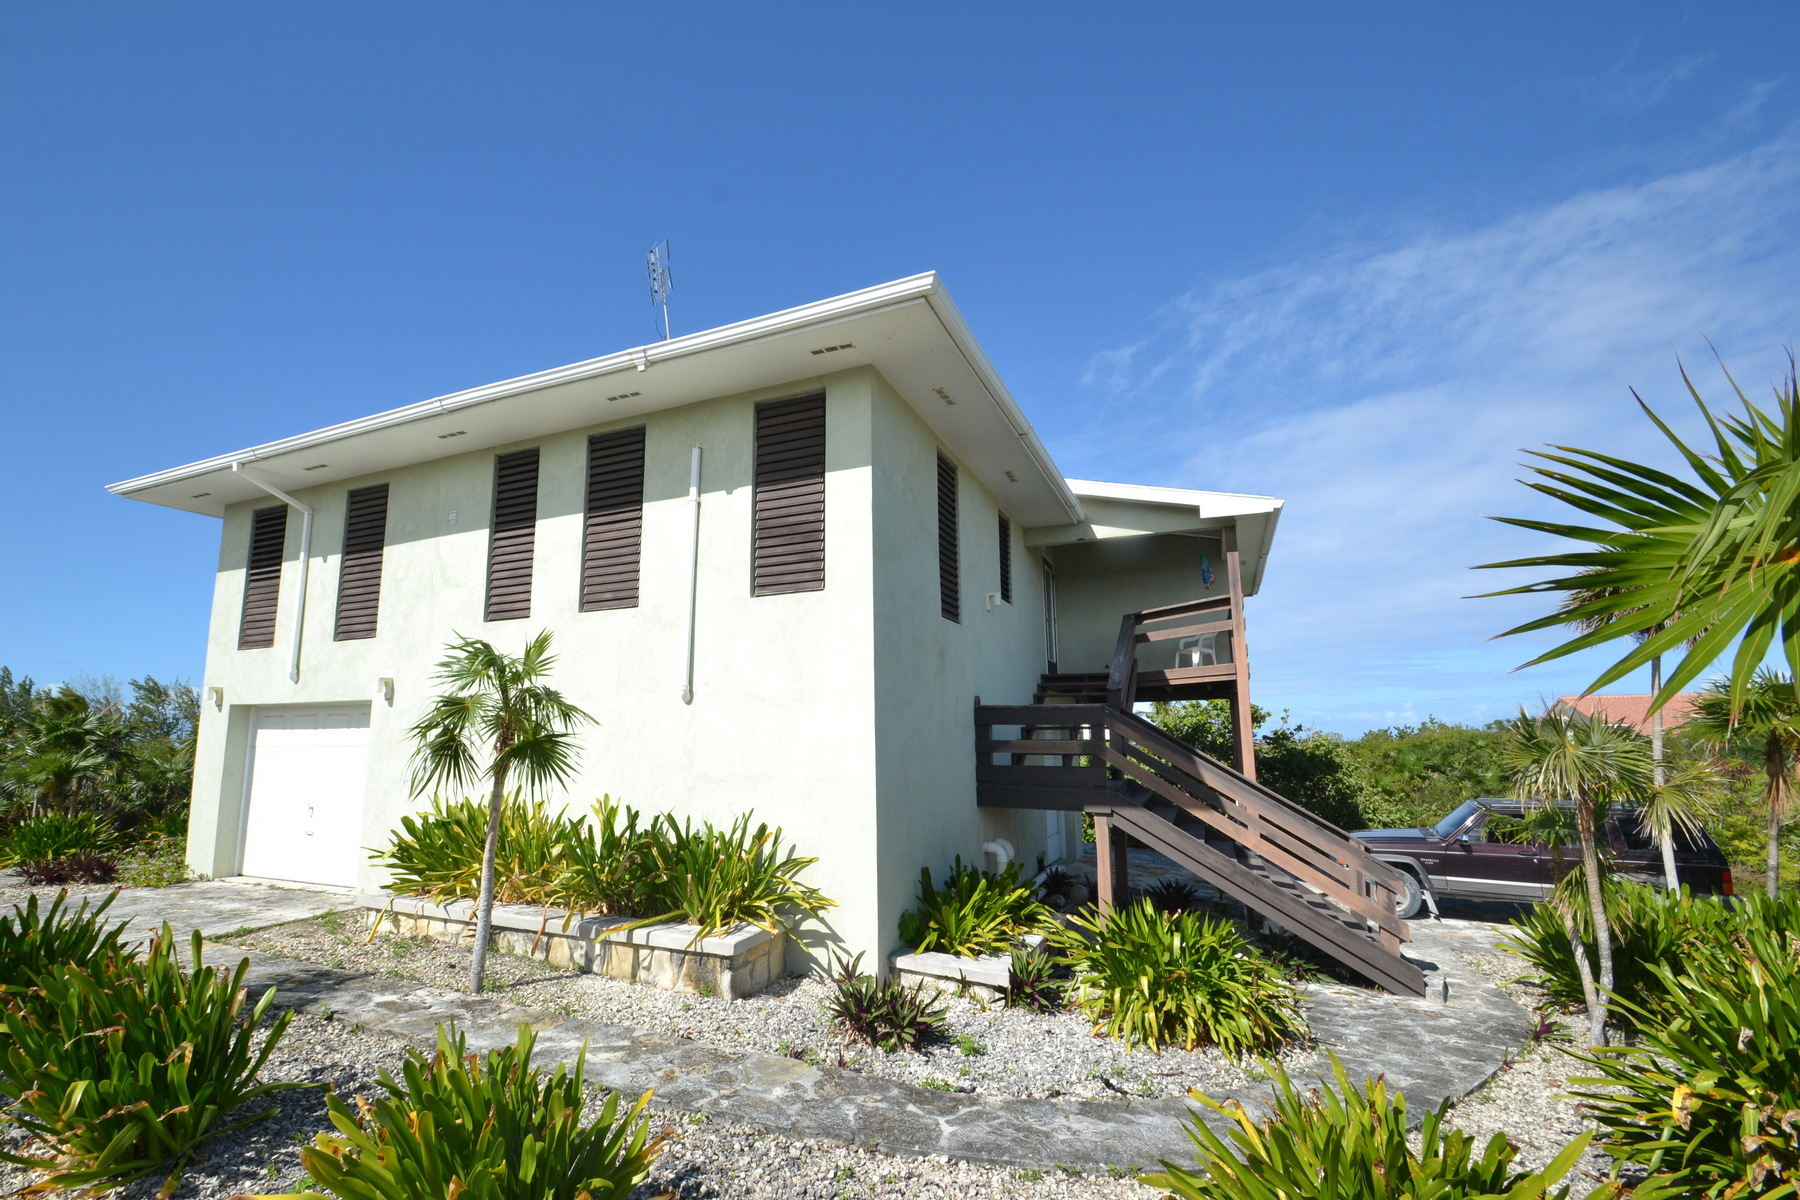 Additional photo for property listing at Ocean View Villa - Whitby Oceanview 惠特比, 北凯科斯 TCI BWI 特克斯和凯科斯群岛